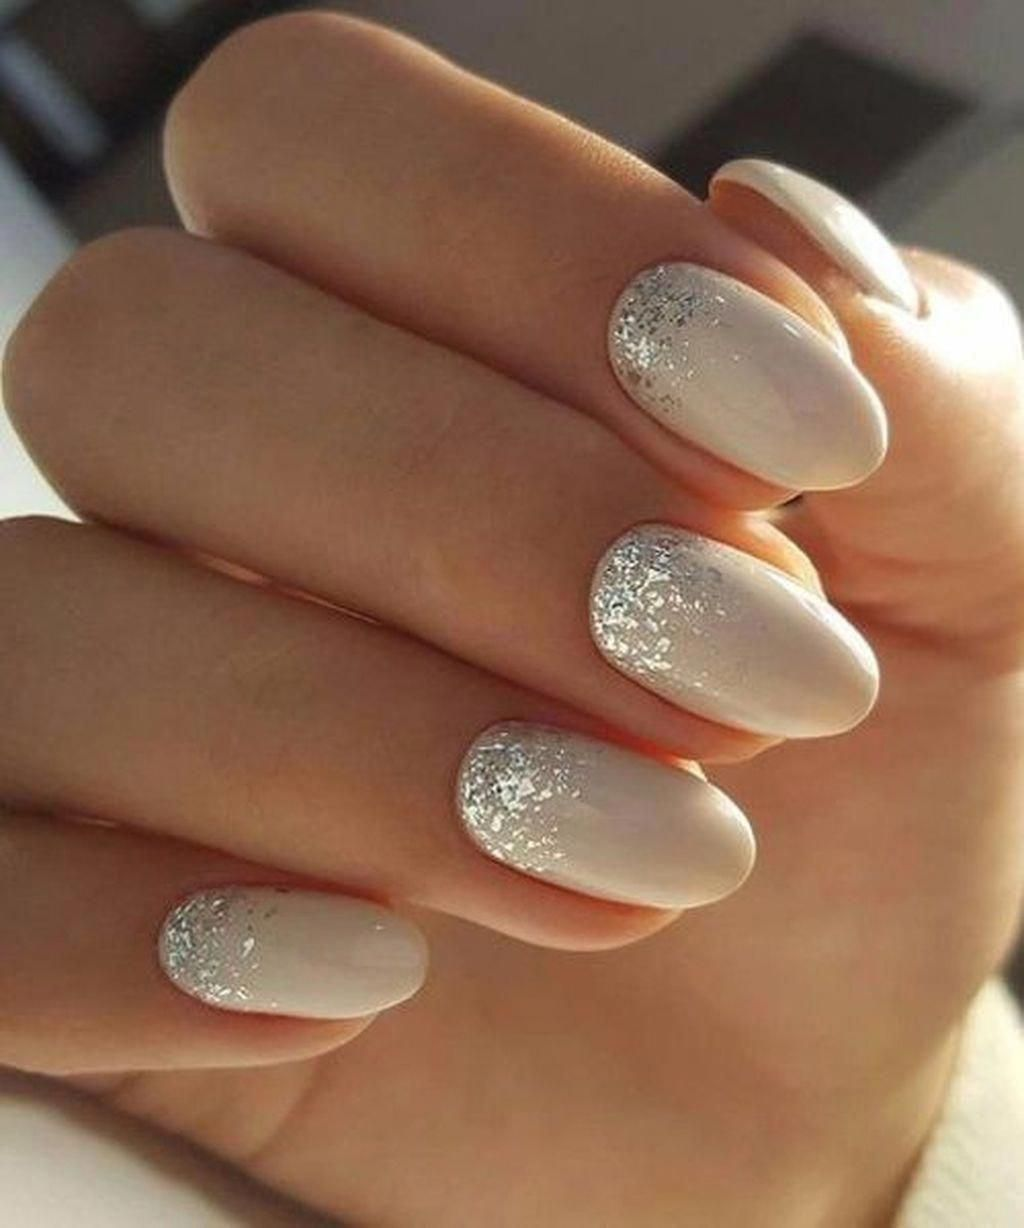 Trim Nail Care Products Pink White And Gold Glitter Nails Engagmentnails Bride Nails Wedding Nails Design Wedding Nail Art Design